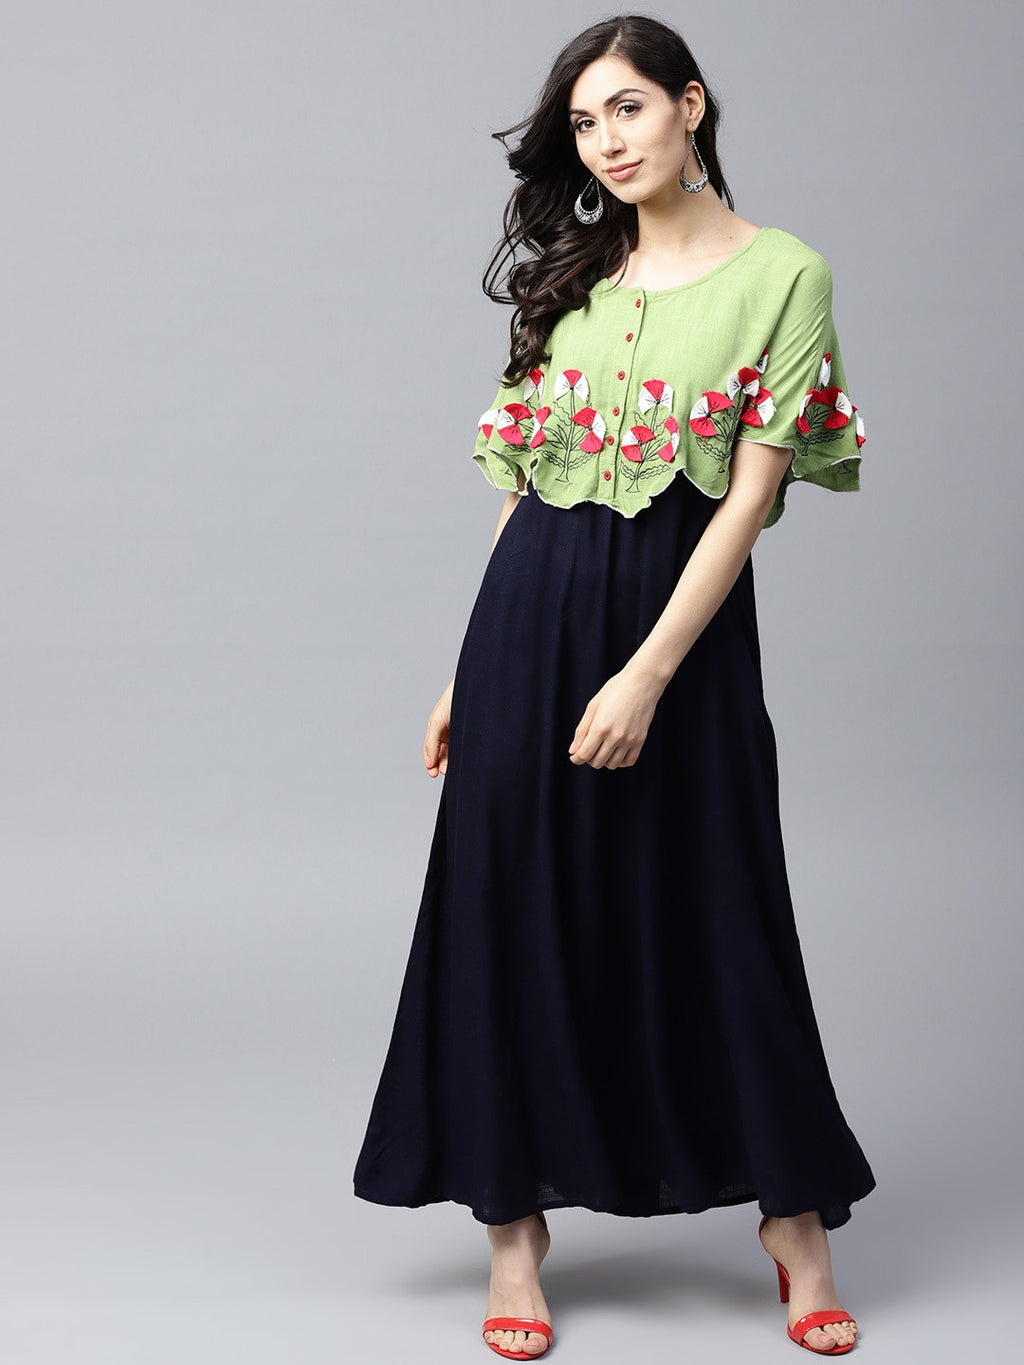 Navy Blue & Green Embroidered Yoke Cape Design Maxi (Fully Stitched) | Znx4ever.com